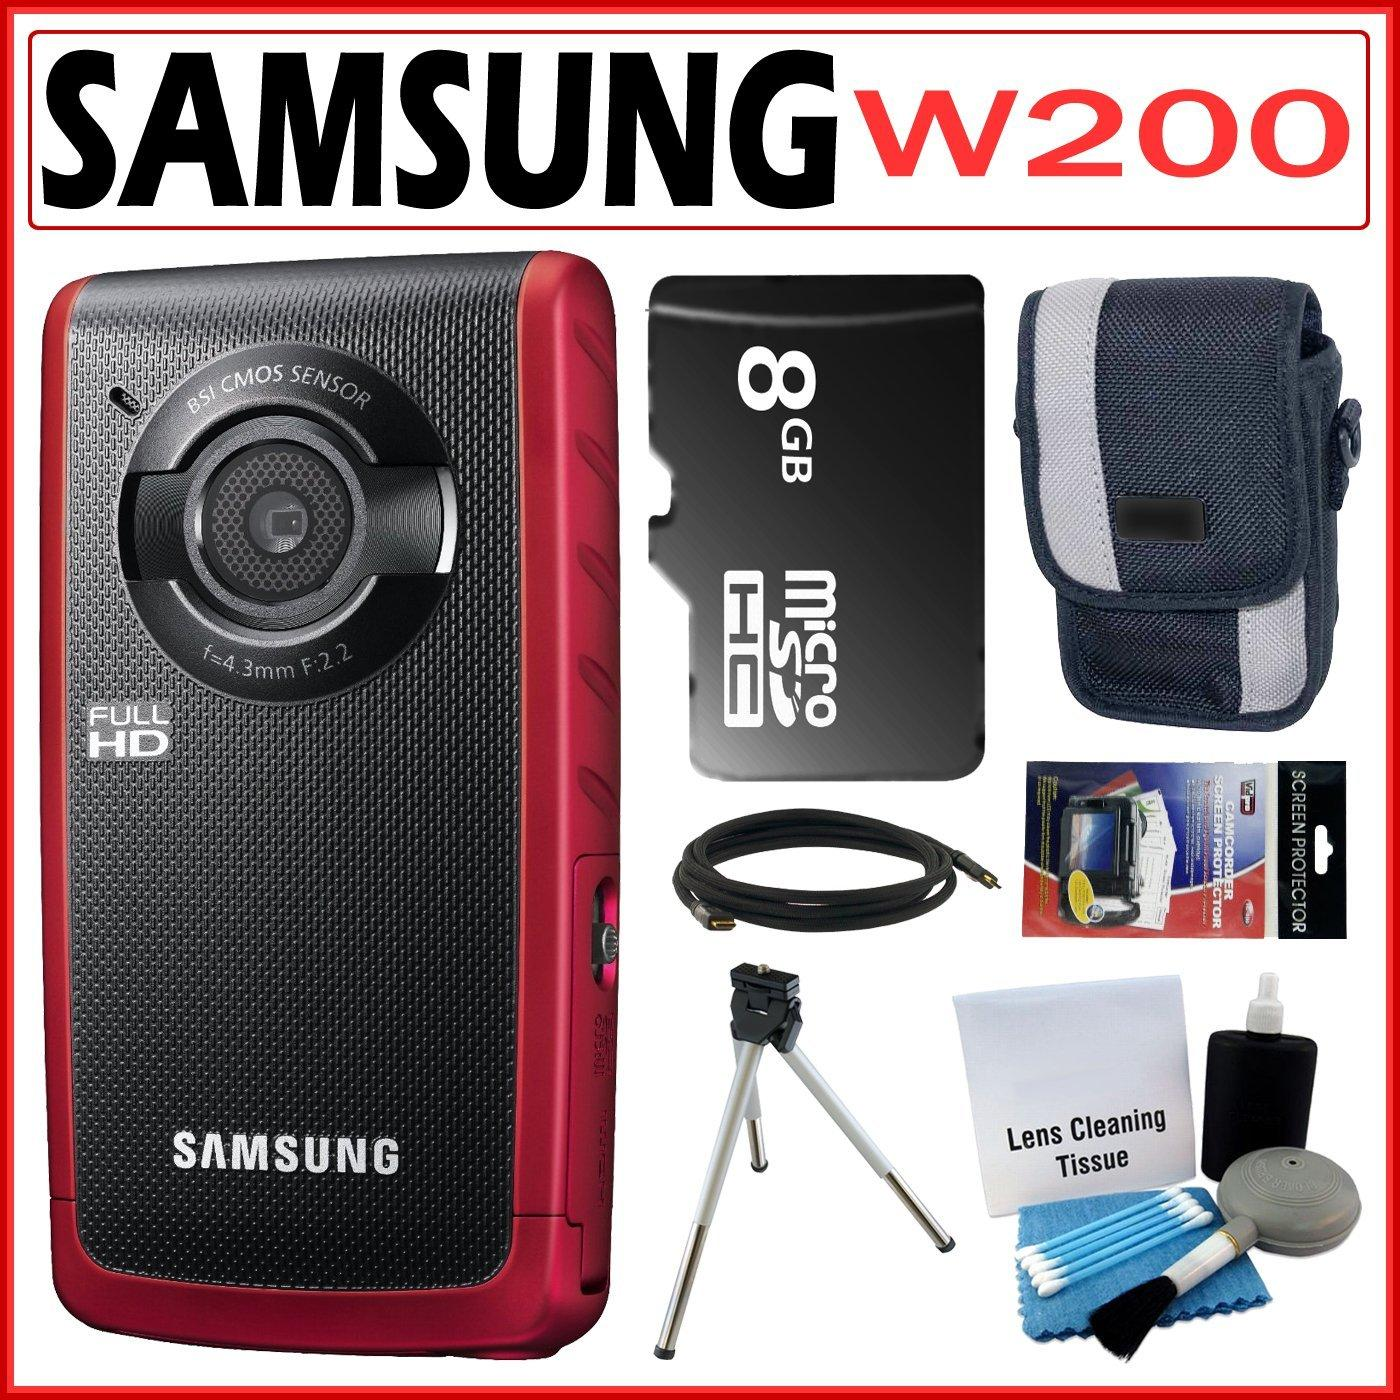 Samsung W200 Rugged Full HD 1080p Red Pocket Camcorder with 8GB Kit